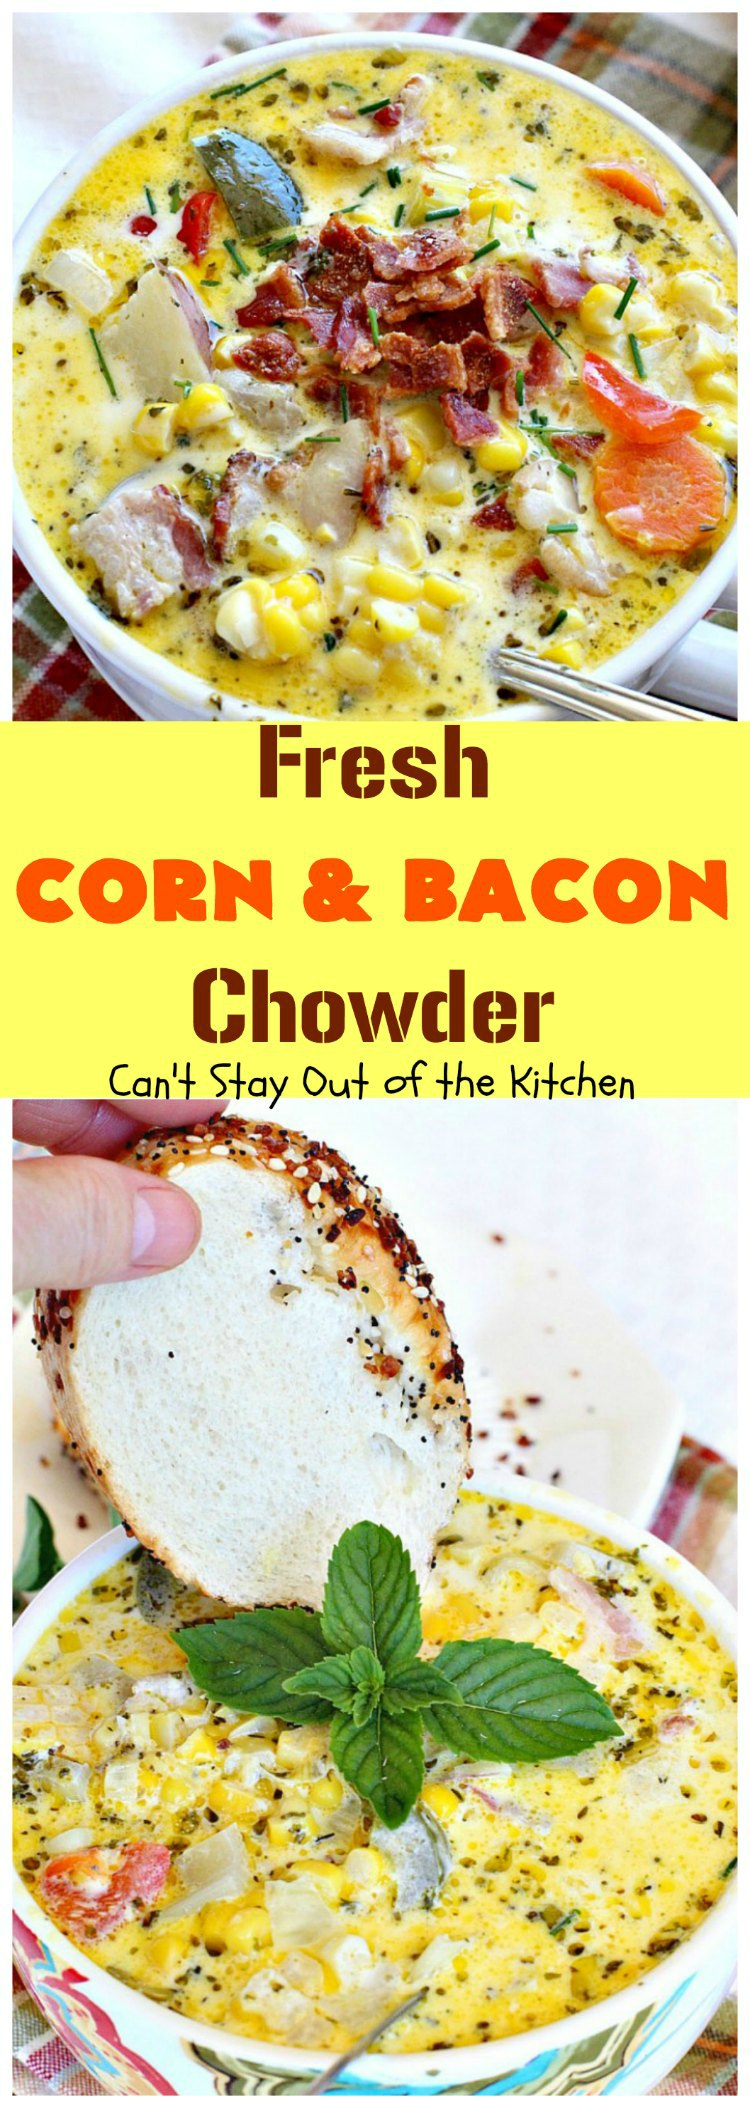 Fresh Corn and Bacon Chowder | Can't Stay Out of the Kitchen